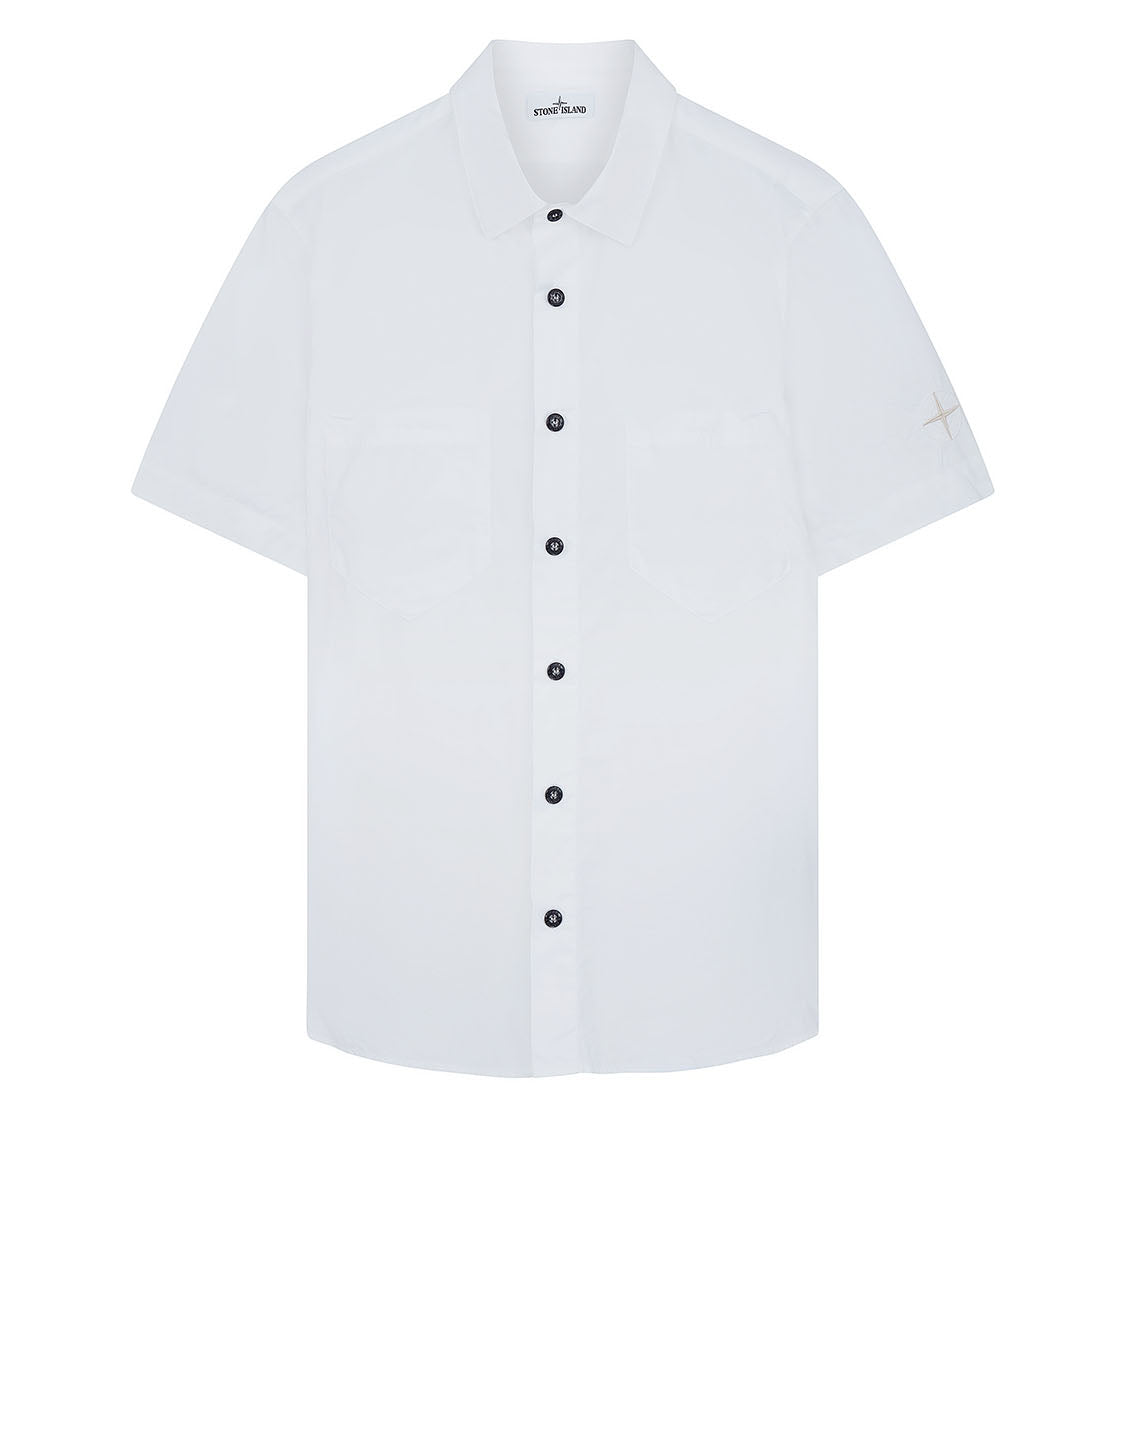 12610 Short Sleeve Shirt in White